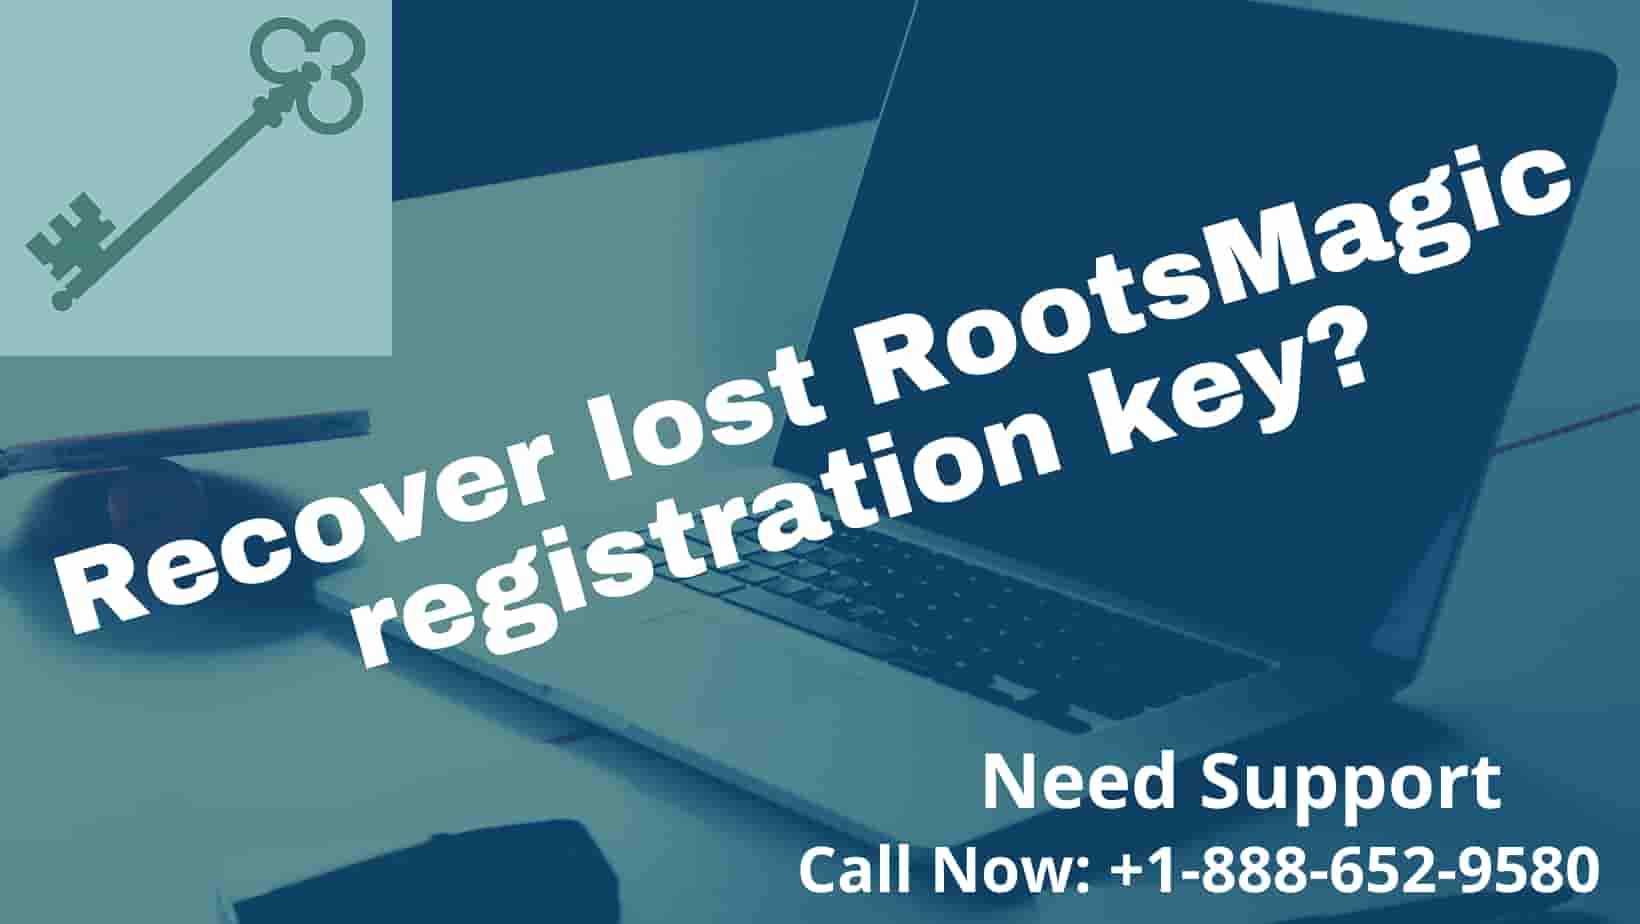 Recover lost RootsMagic Registration Key